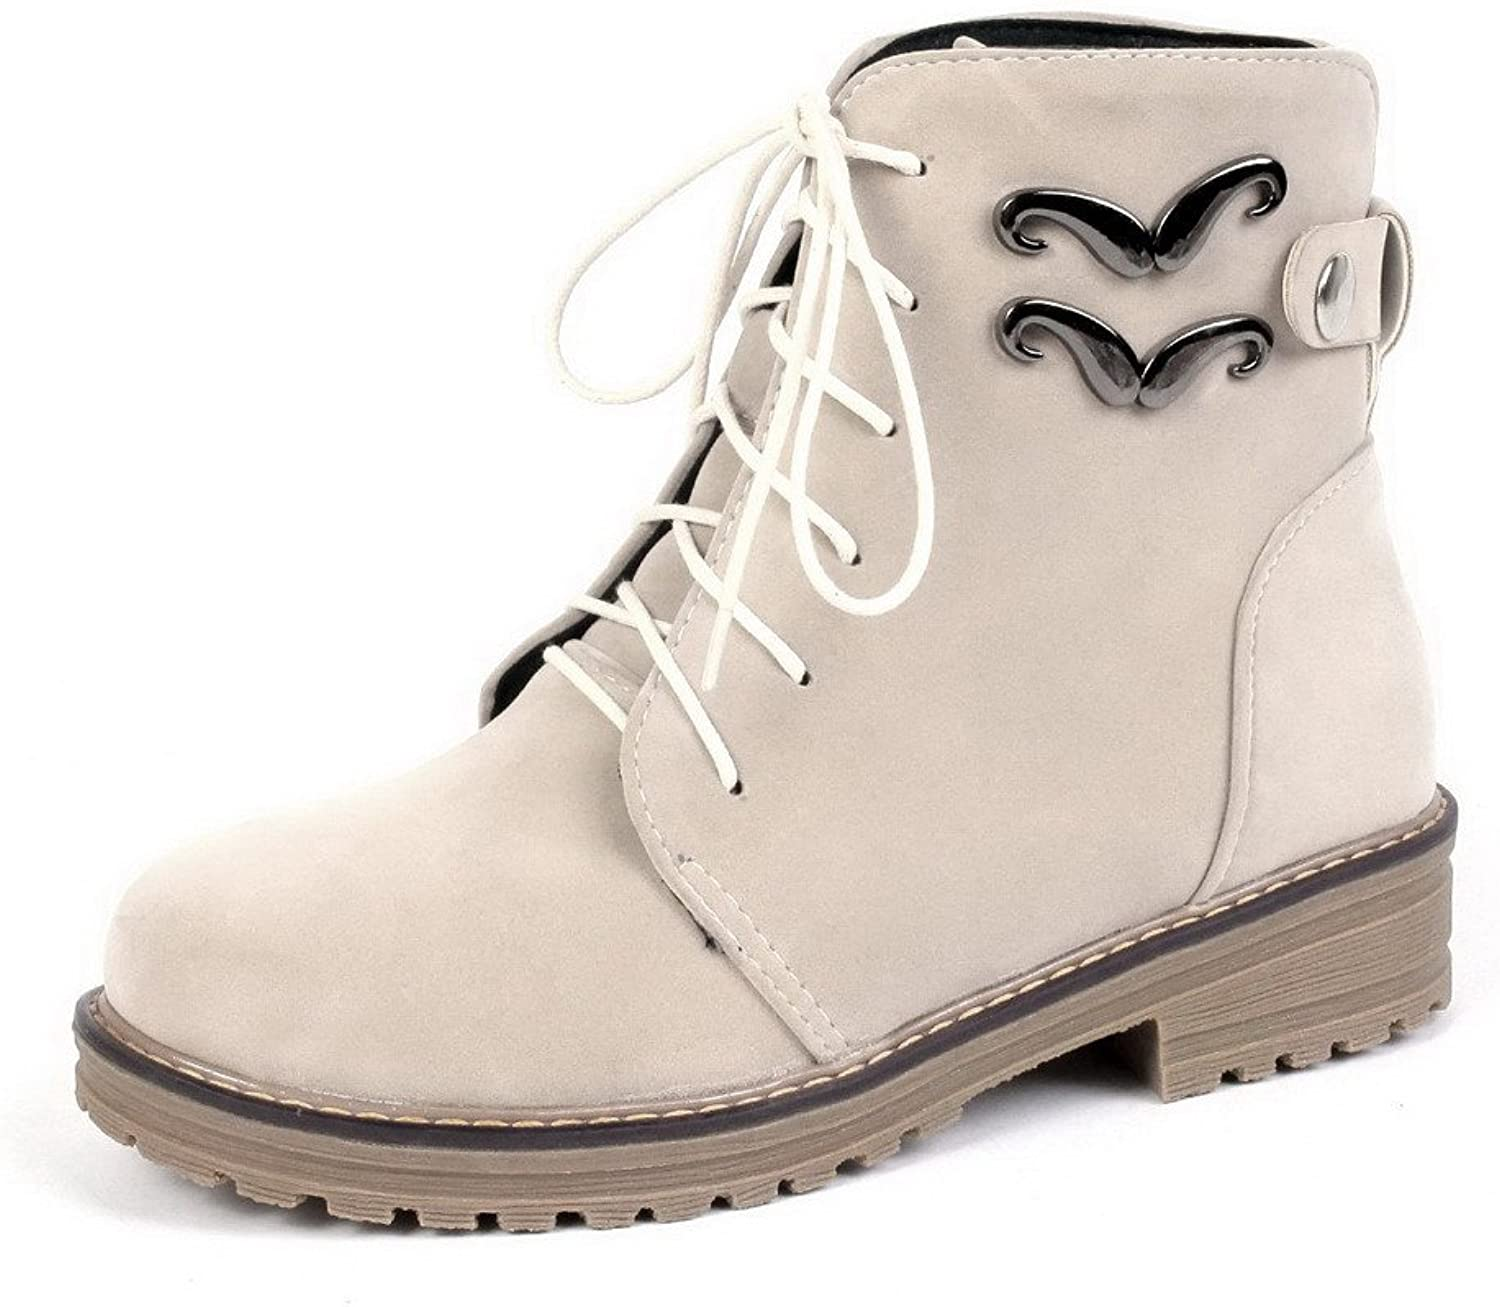 WeenFashion Women's Lace-Up Round Closed Toe Low Heels Imitated Suede Low-Top Boots